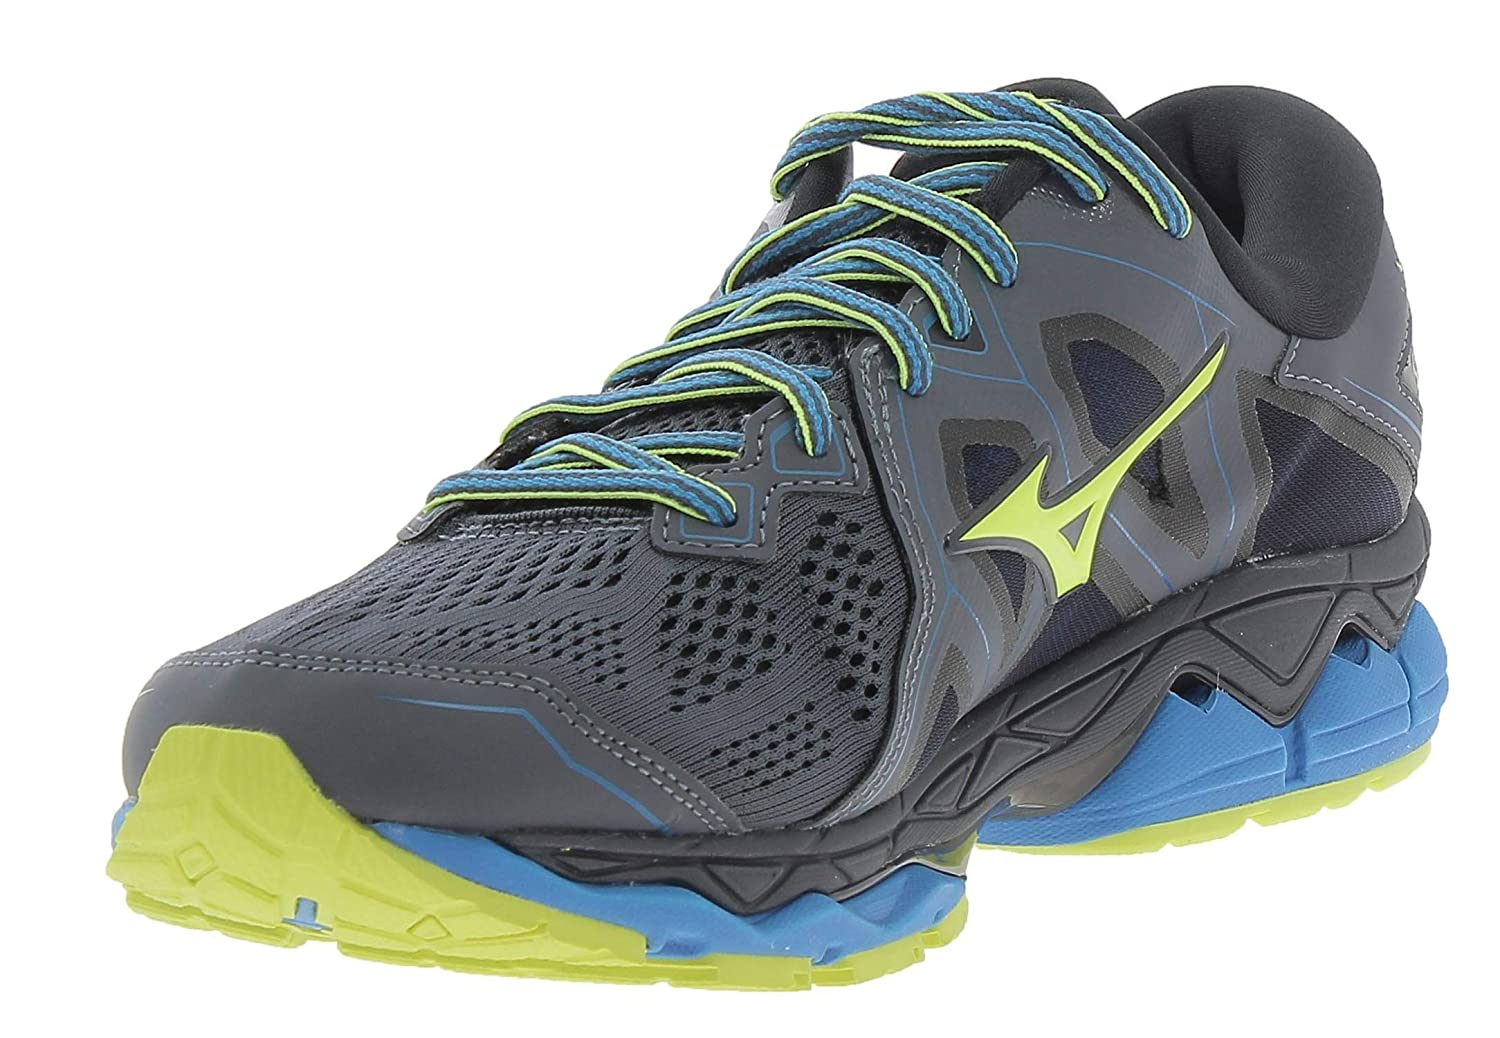 separation shoes 5c2af af91d Mizuno Wave Sky 2, Scarpe da Corsa Uomo  Amazon.it  Scarpe e borse